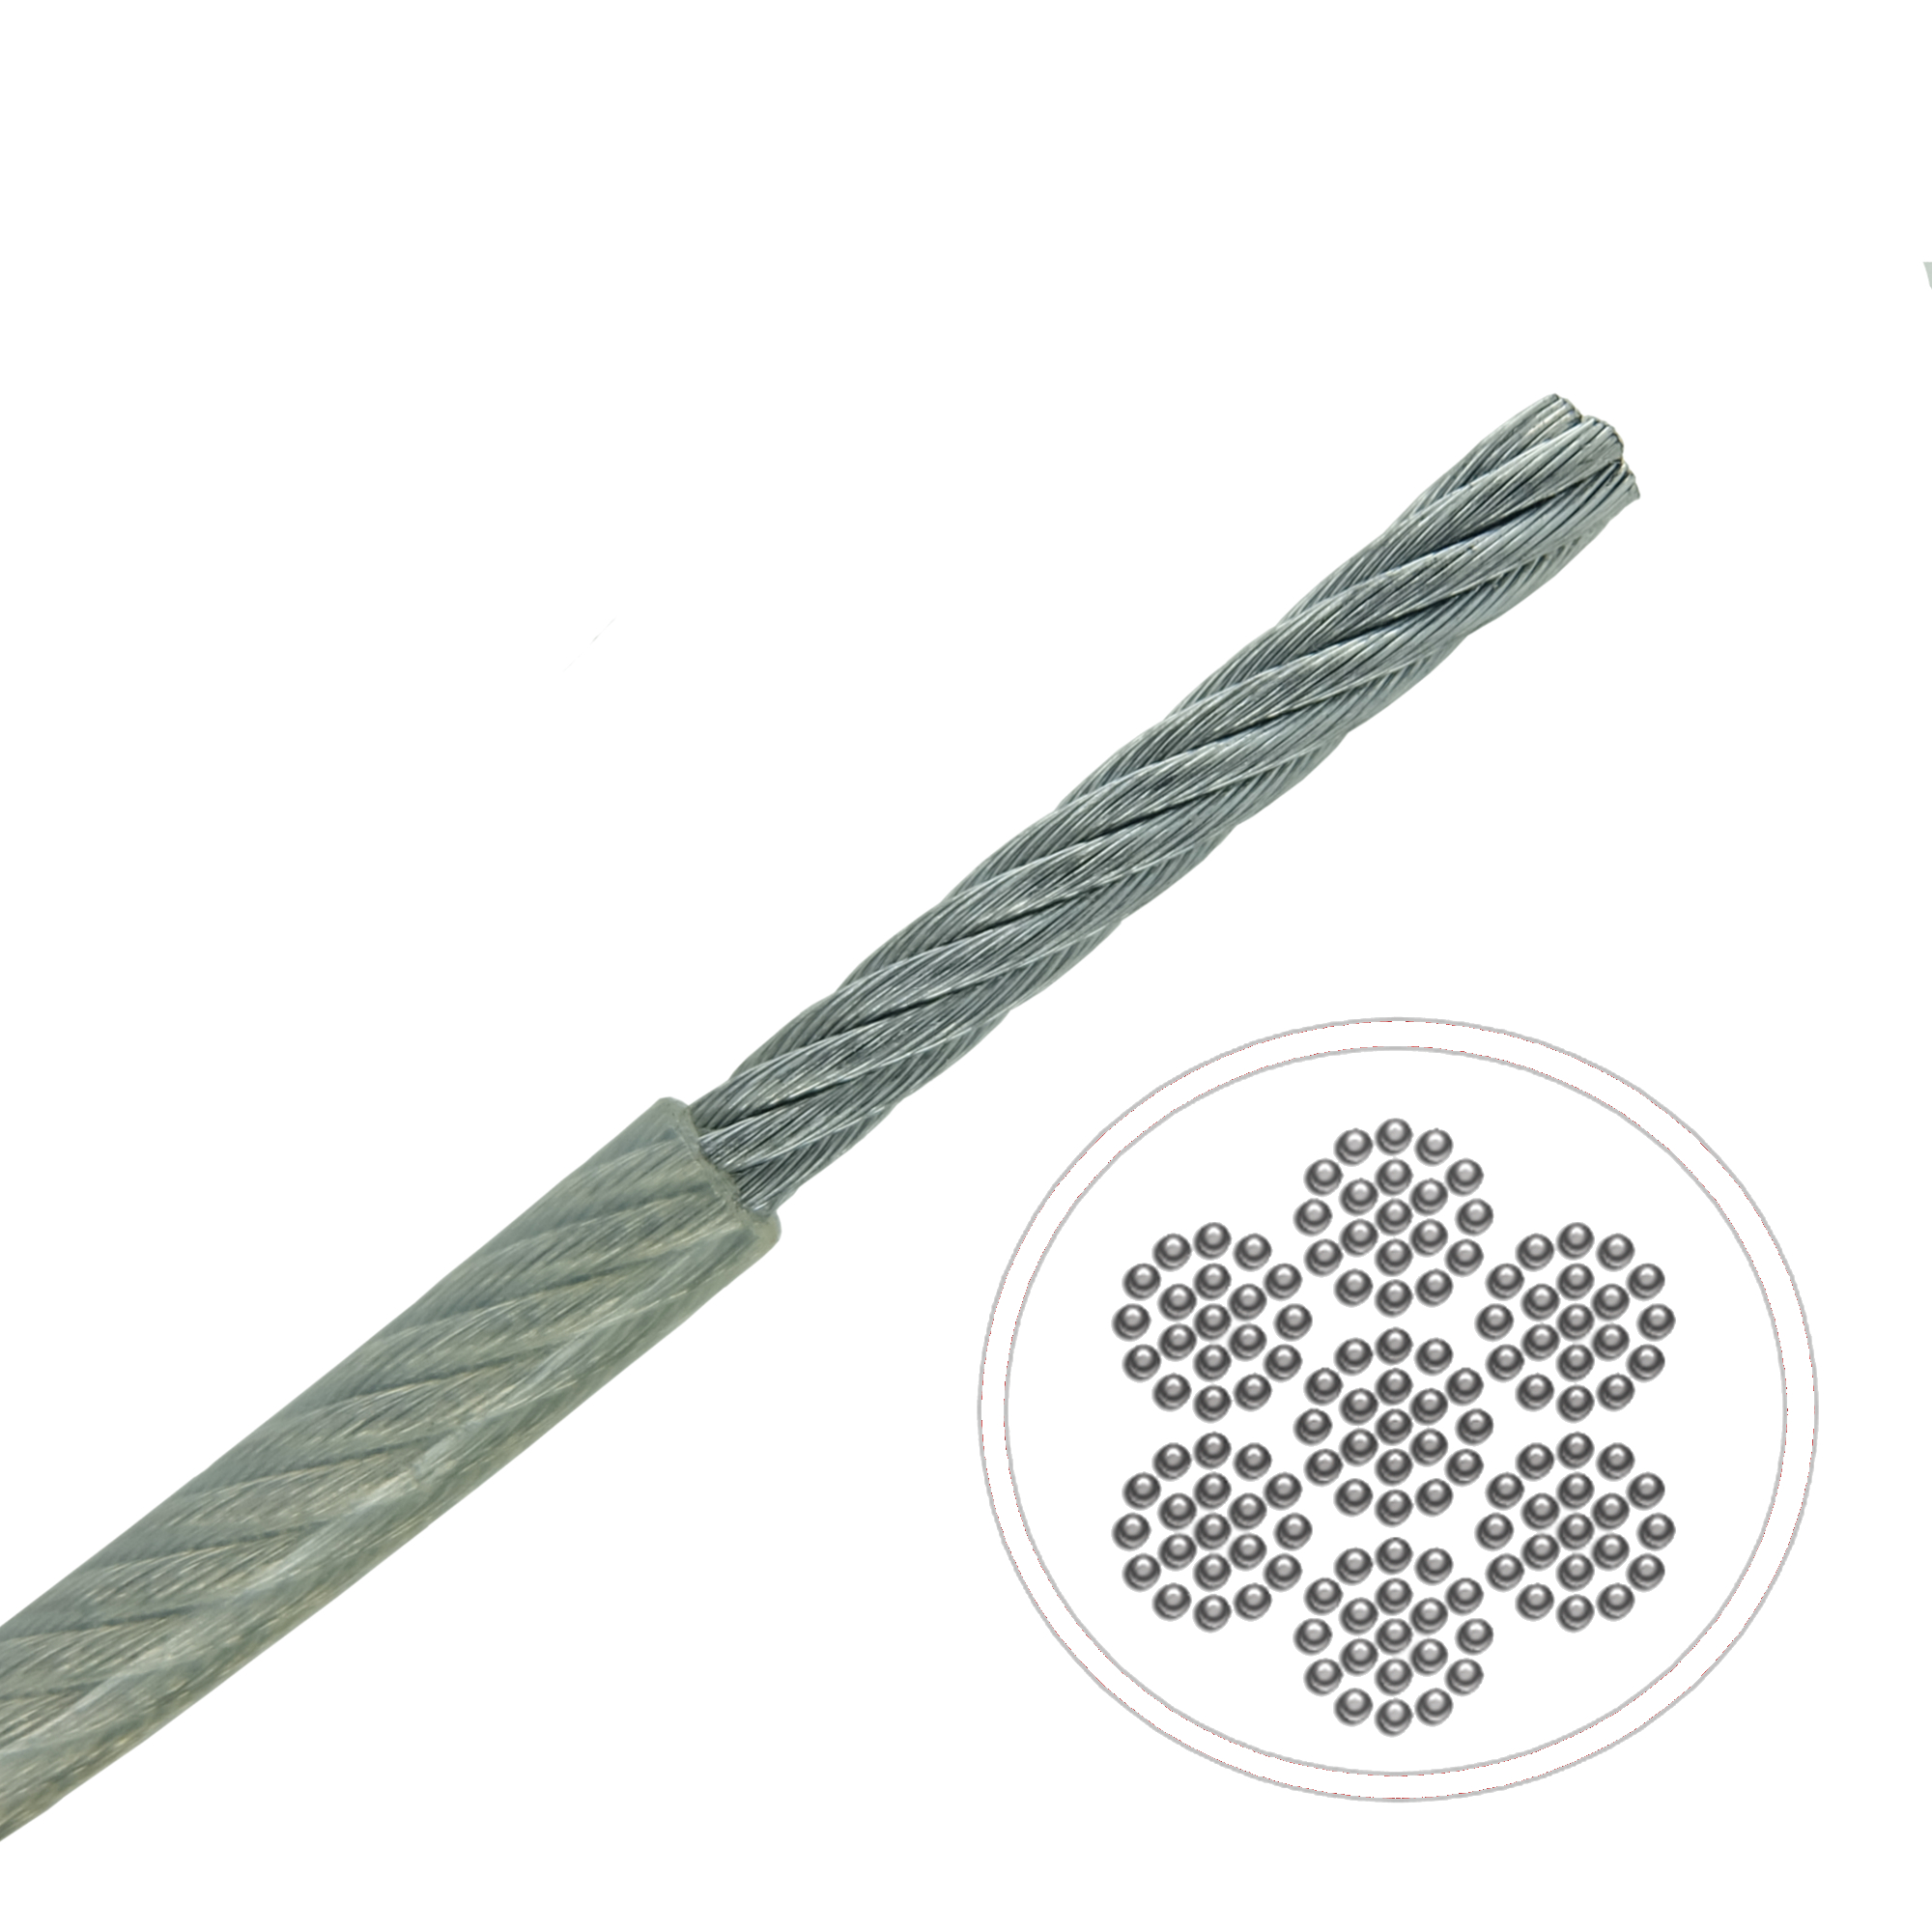 0.6mm 7x19 A4-AISI 316 Stainless Steel Cable MBL 22kgs Clear Nylon ...